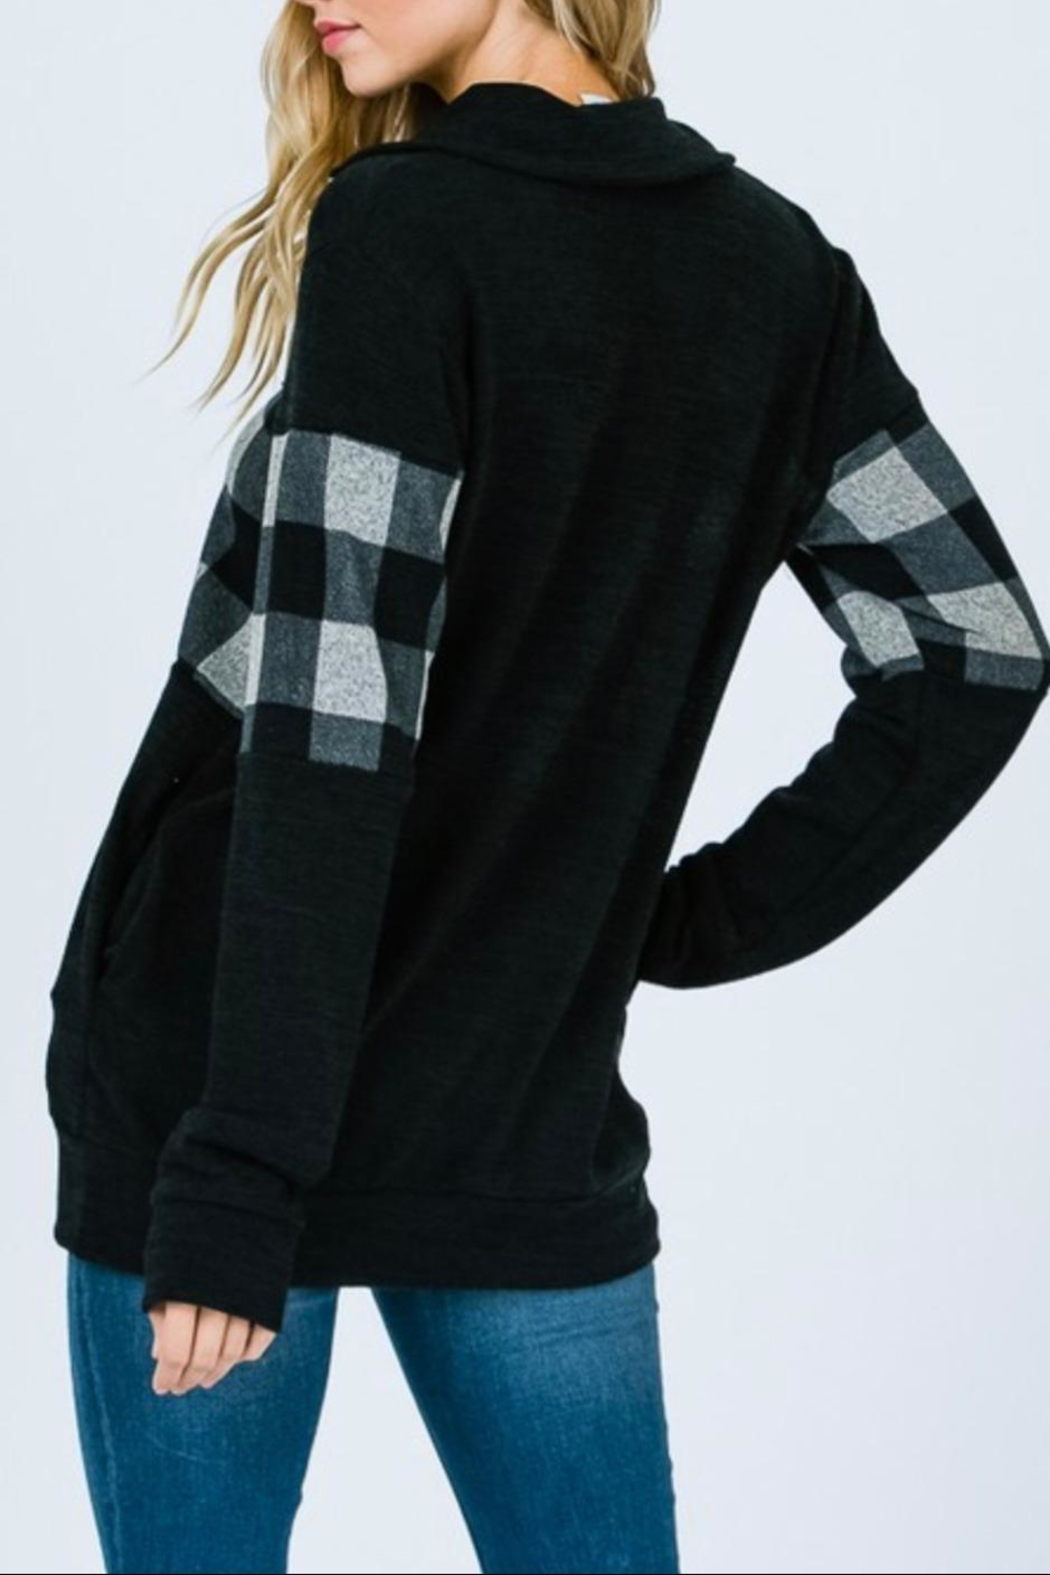 7th Ray Plaid Zip-Up Sweater - Front Full Image